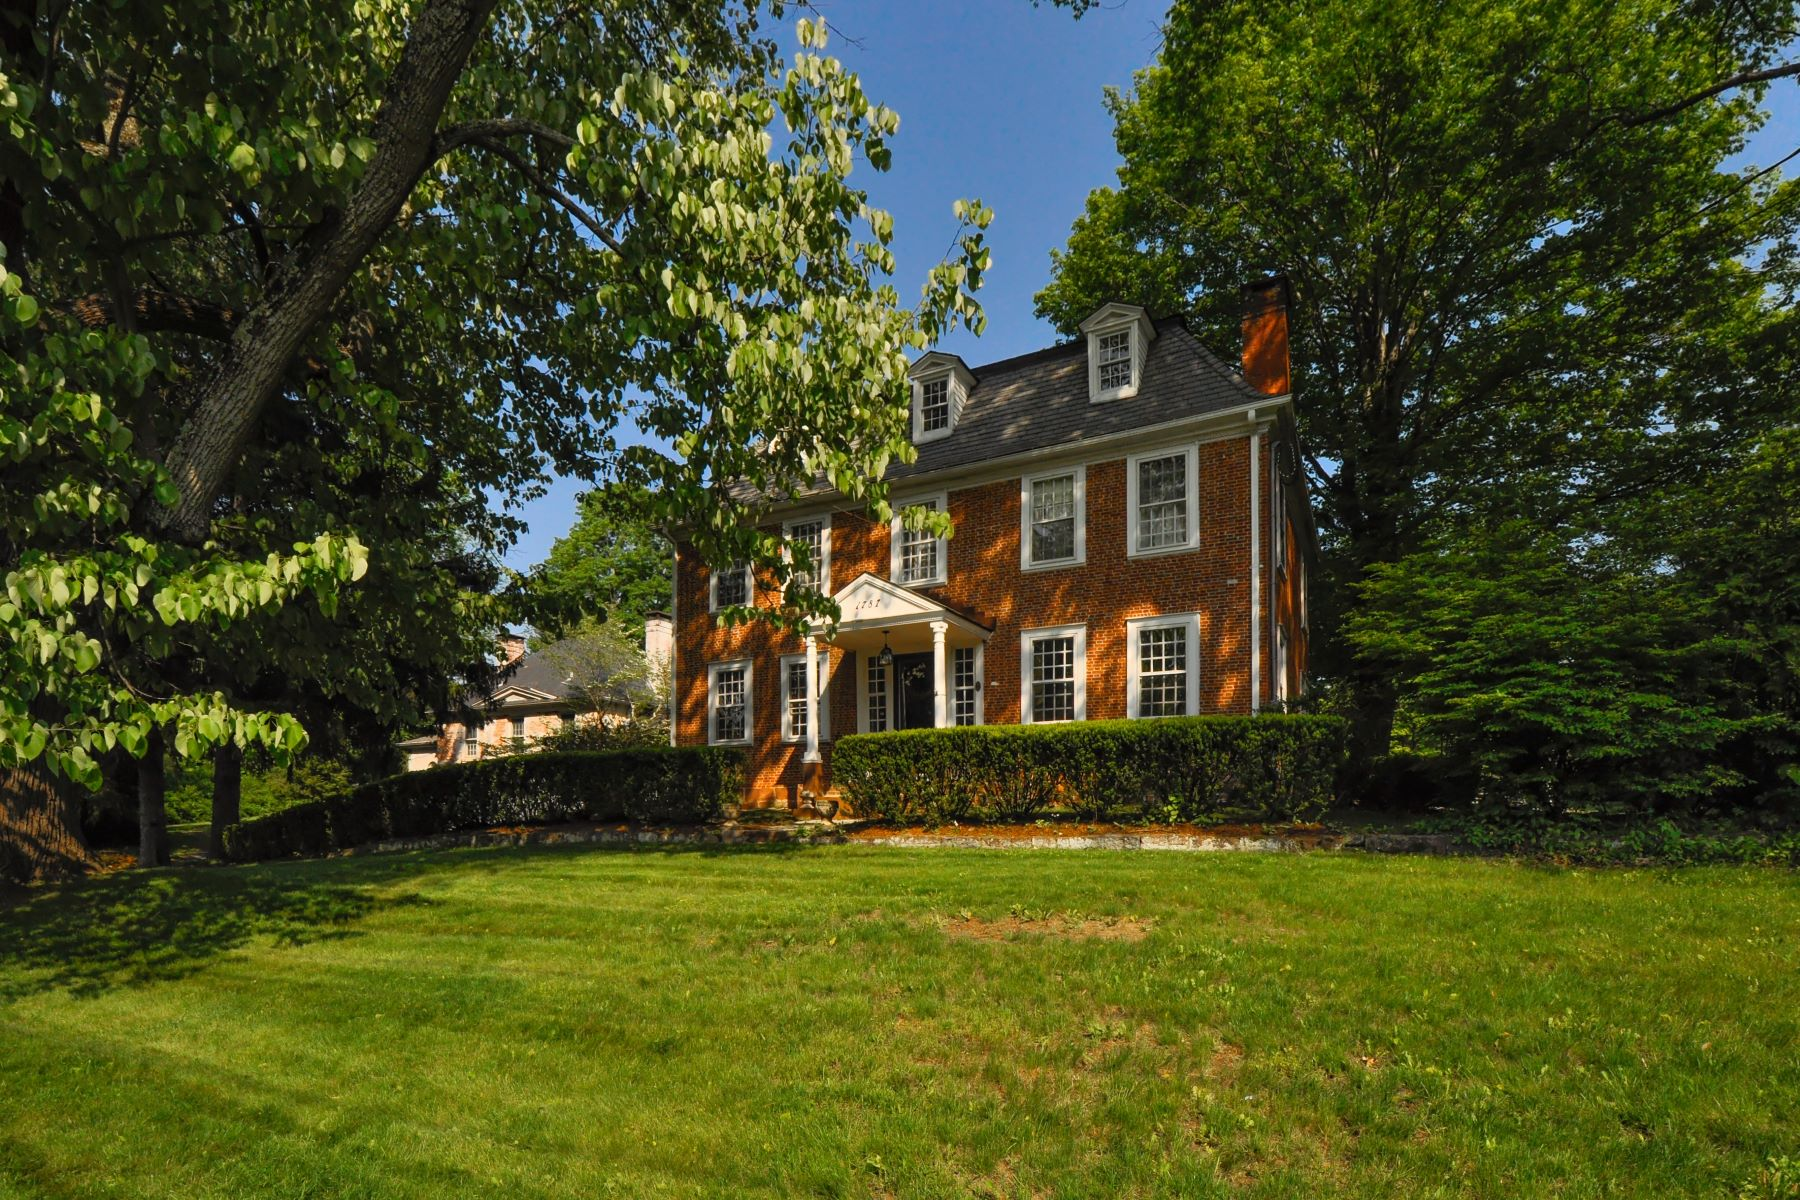 Single Family Home for Sale at Rochambeau House 1030,1050 Main Street North Southbury, Connecticut 06488 United States